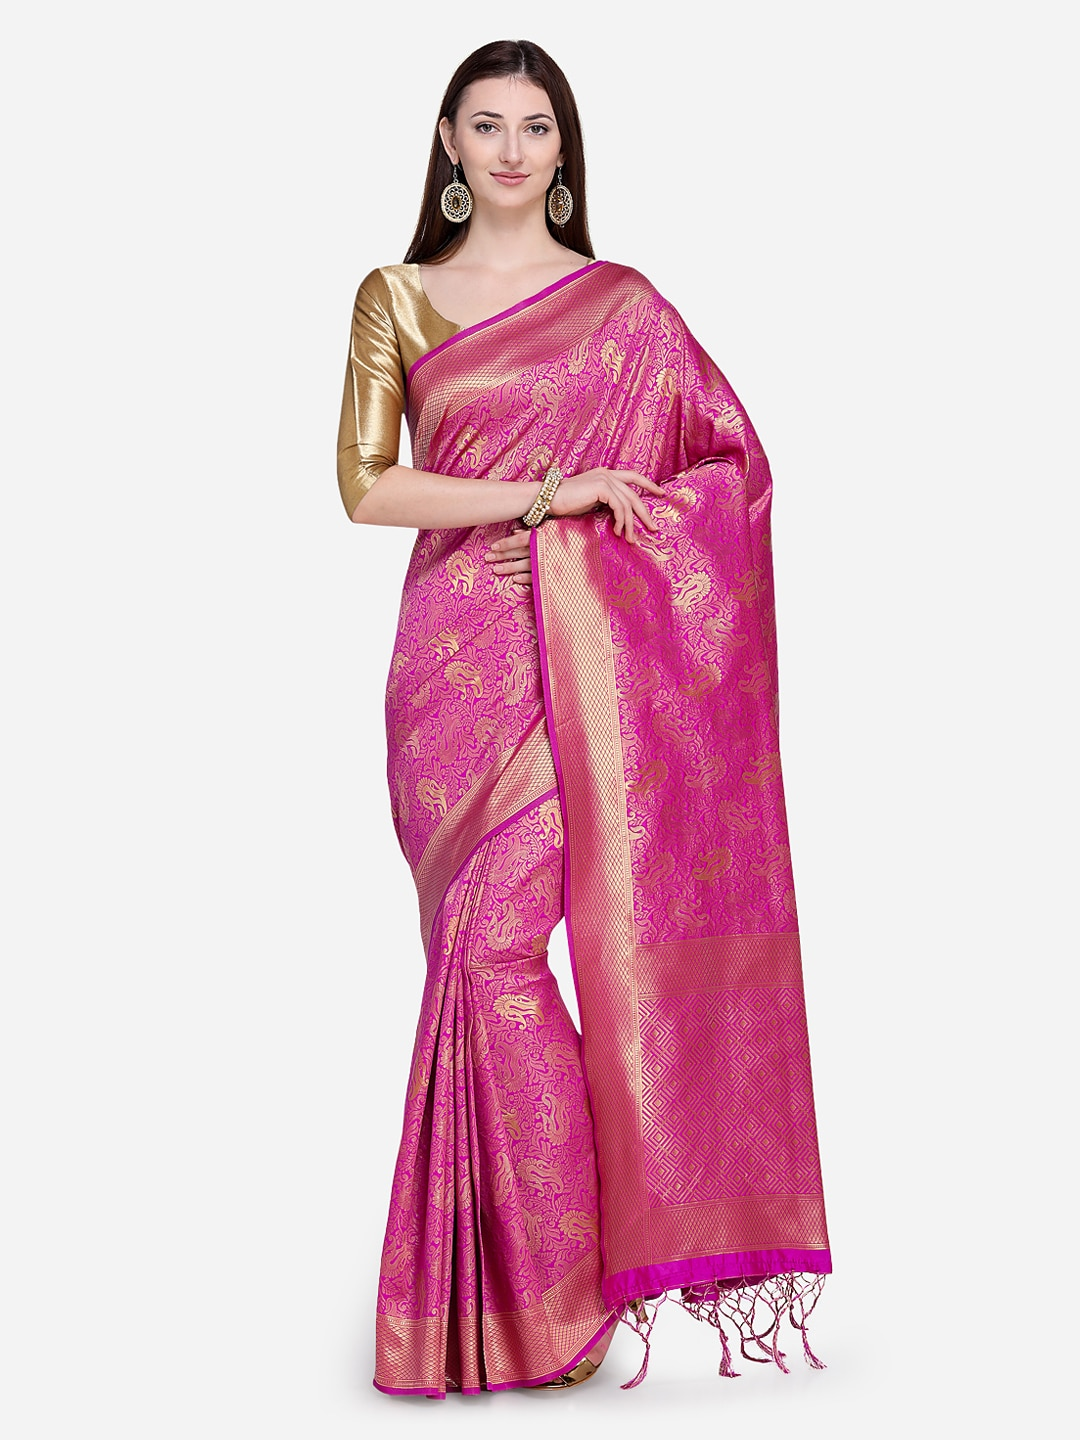 5a827a4363 Saree Swarg - Buy Saree Swarg online in India